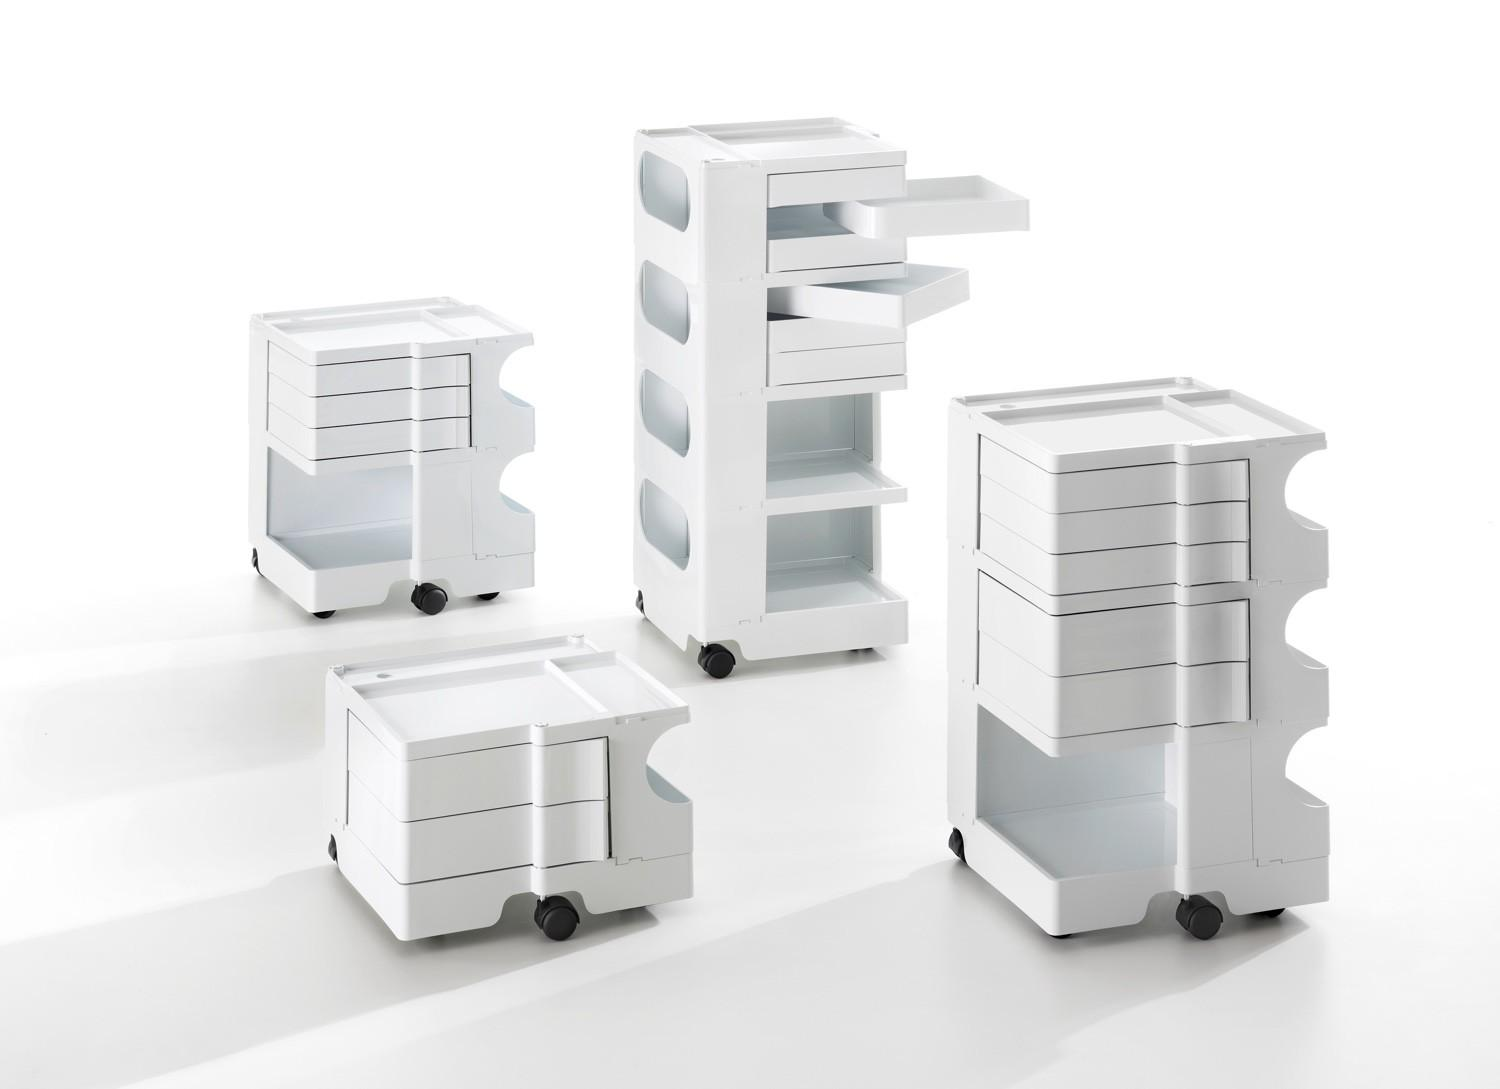 Design Icon Boby Shelving Tower